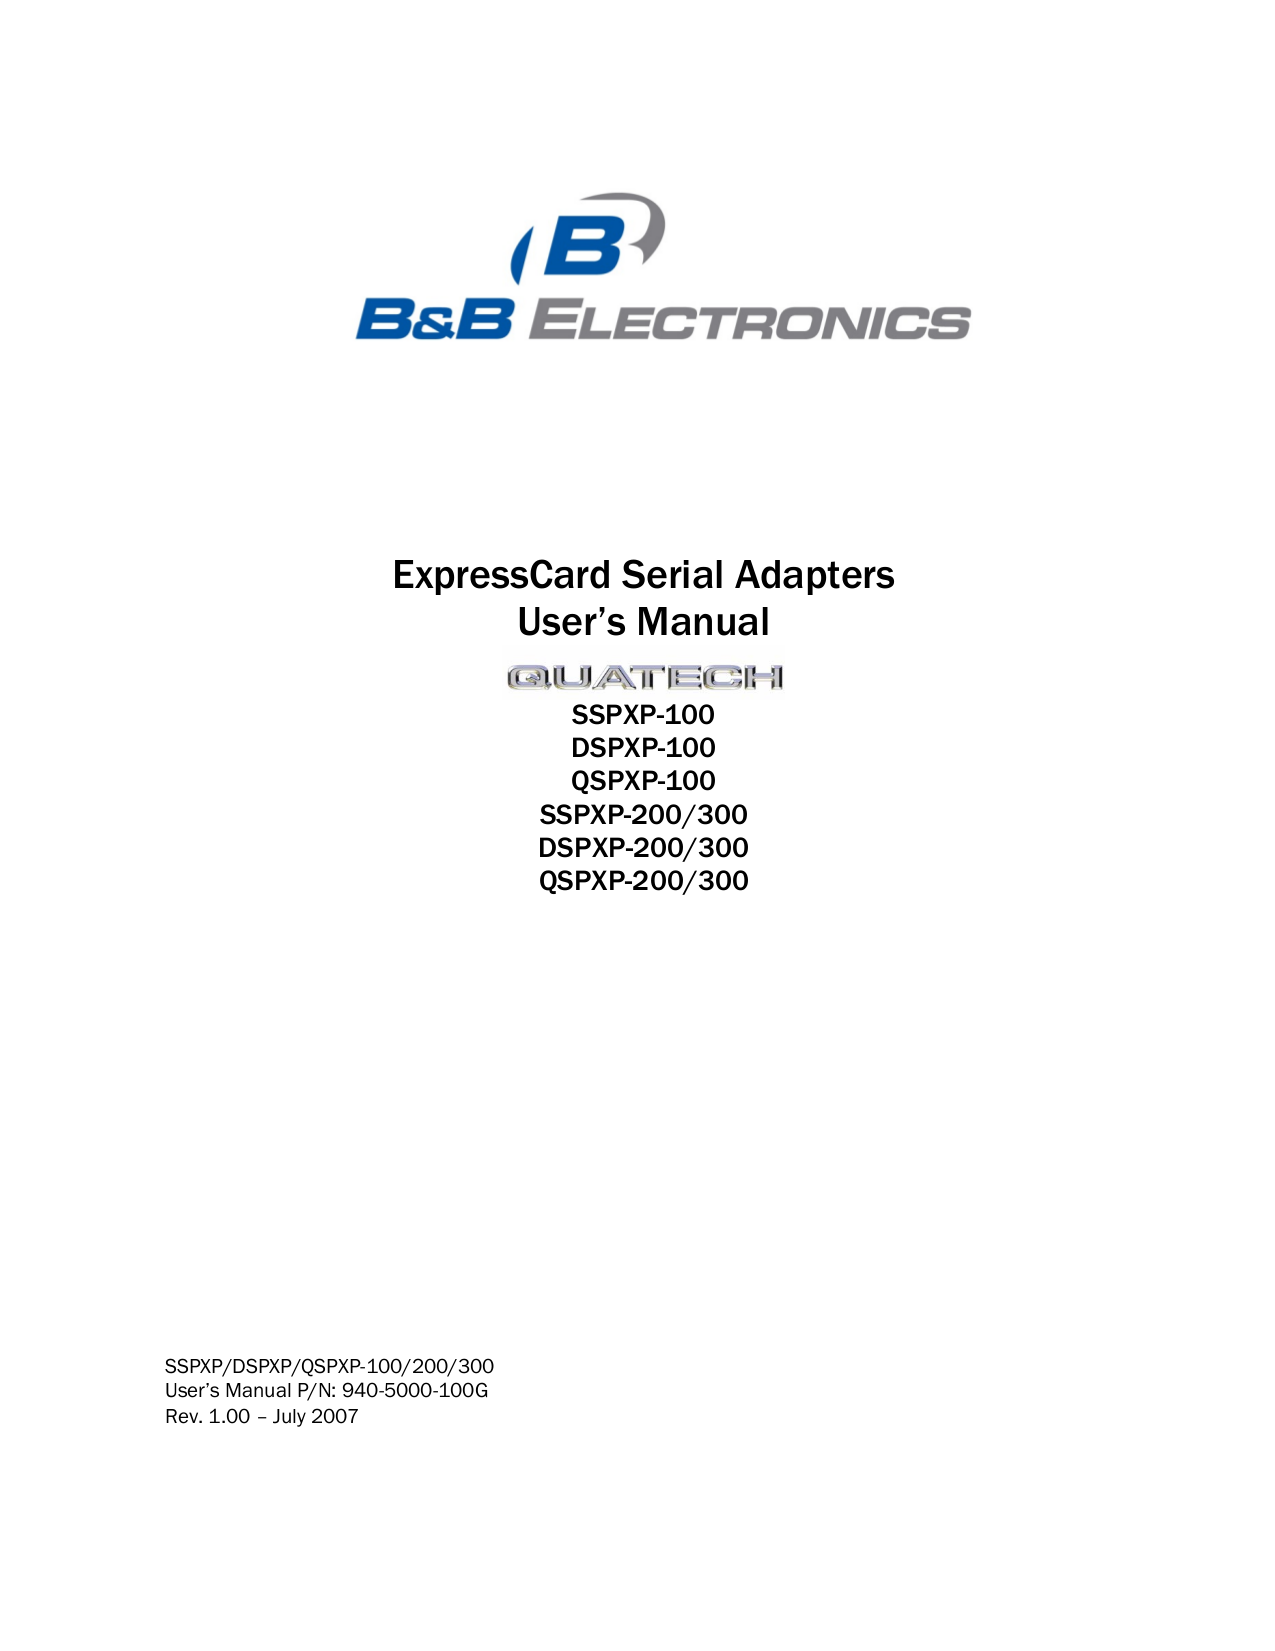 pdf for Quatech Other QSPXP-300 PCI Express Devices manual